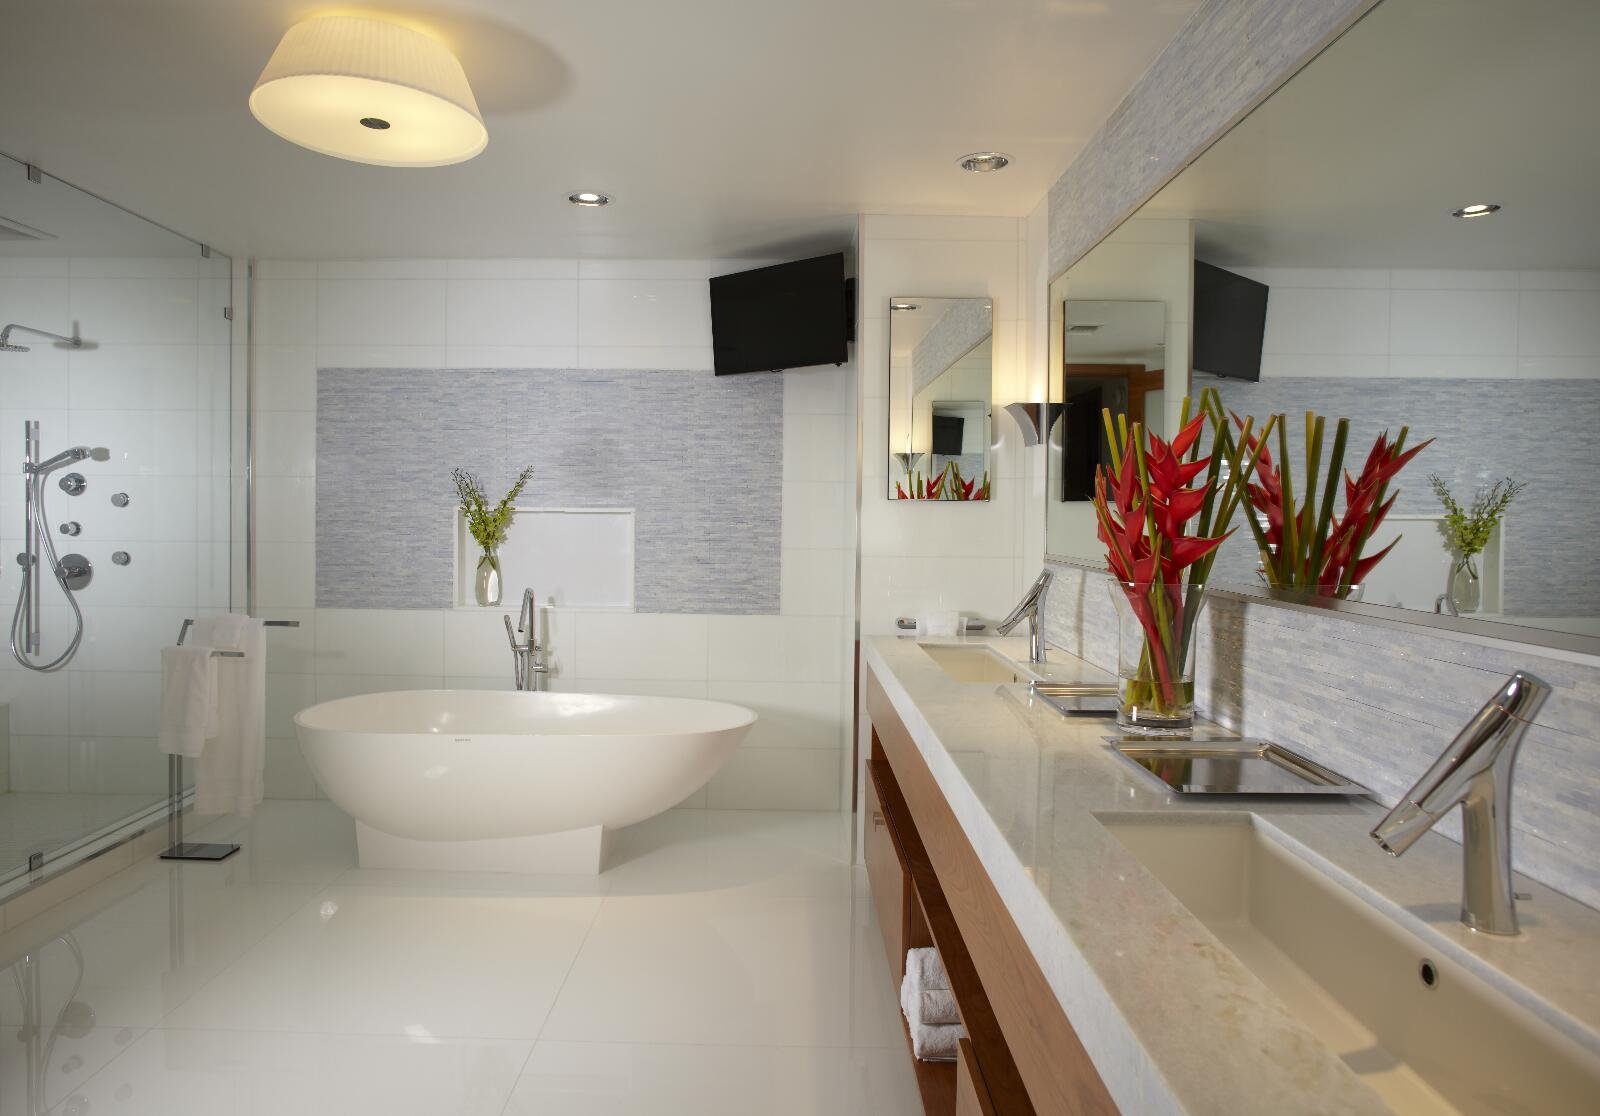 Bathroom Interior Design Services in Miami